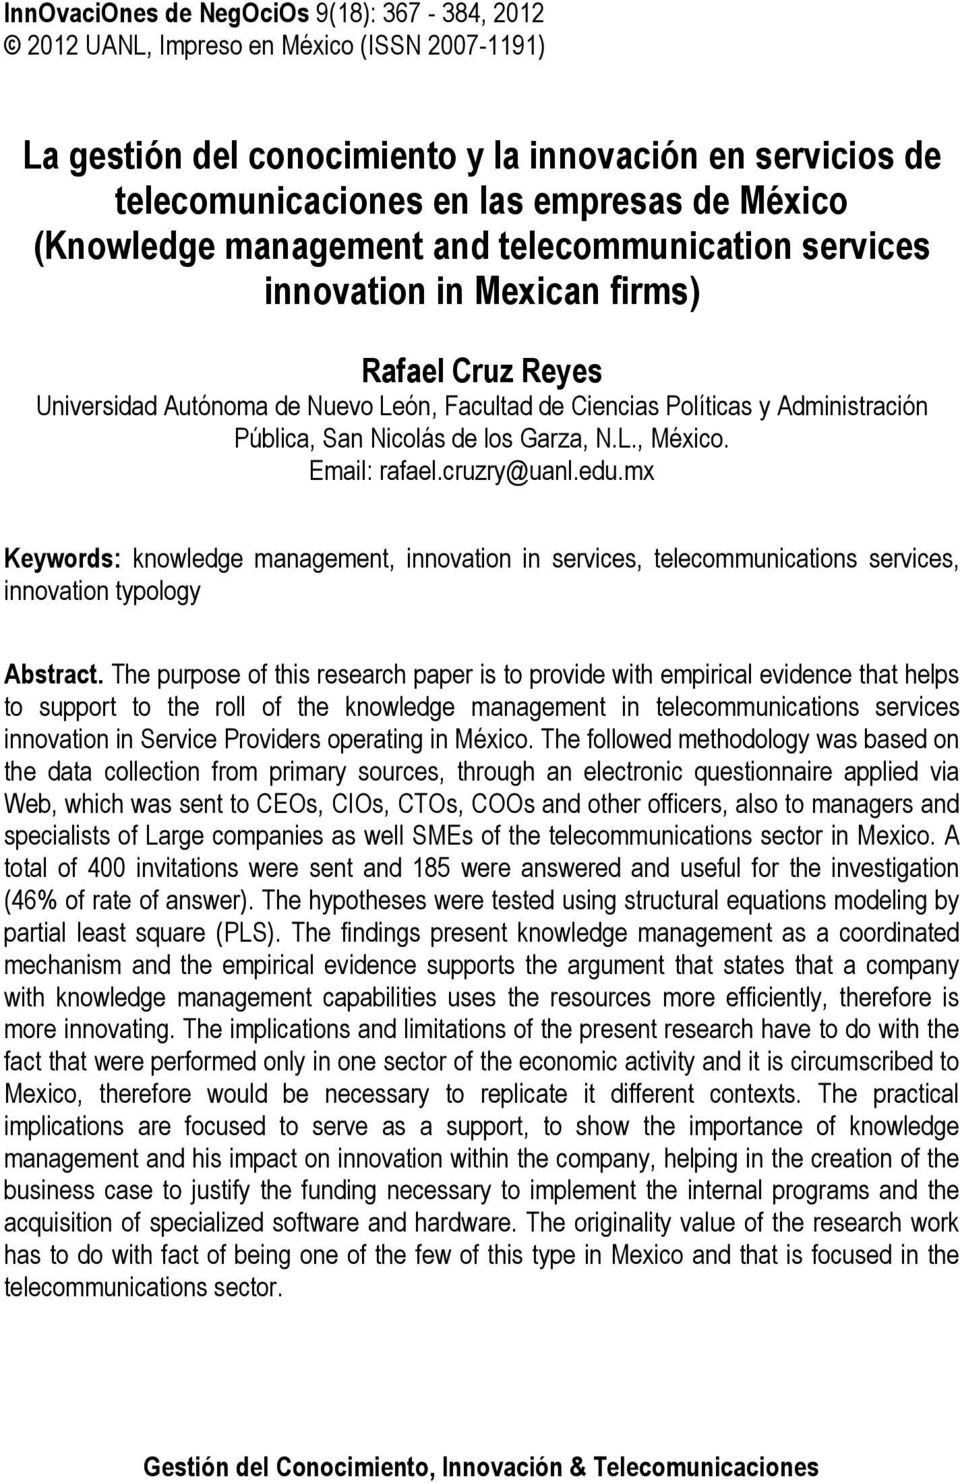 Nicolás de los Garza, N.L., México. Email: rafael.cruzry@uanl.edu.mx Keywords: knowledge management, innovation in services, telecommunications services, innovation typology Abstract.